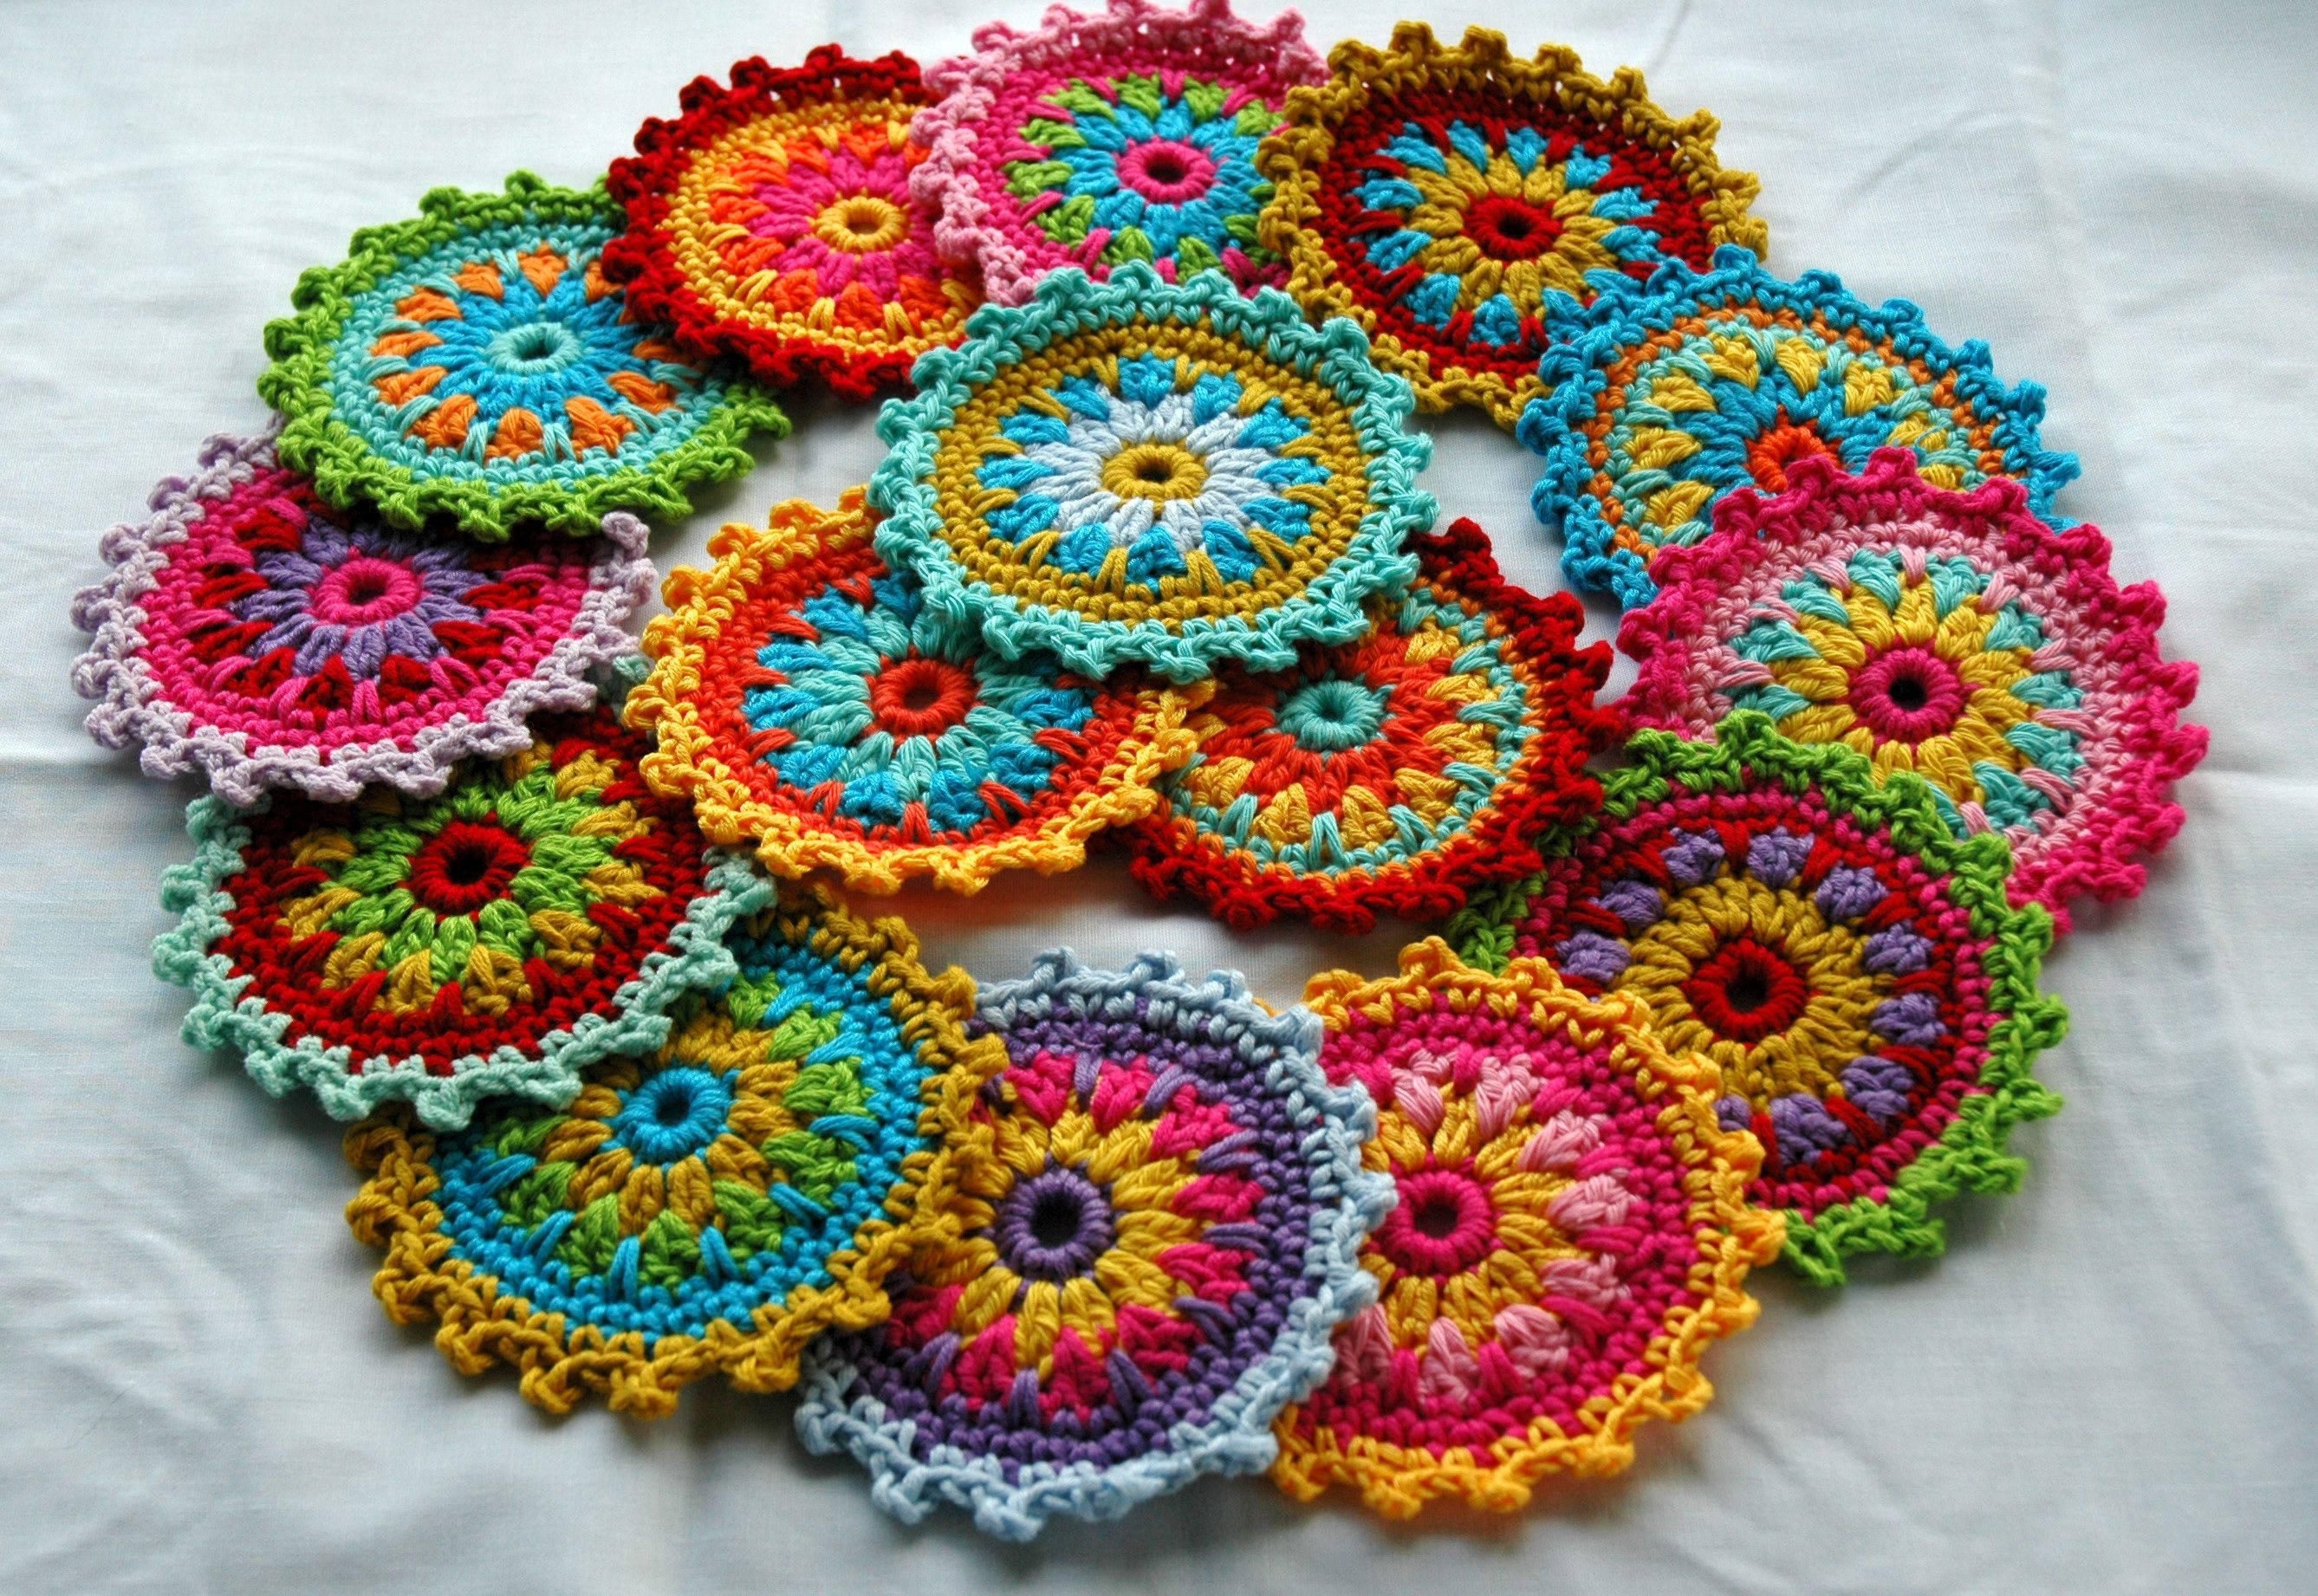 Crochet Flowers for a afghan I am trying to make | I can do this ...